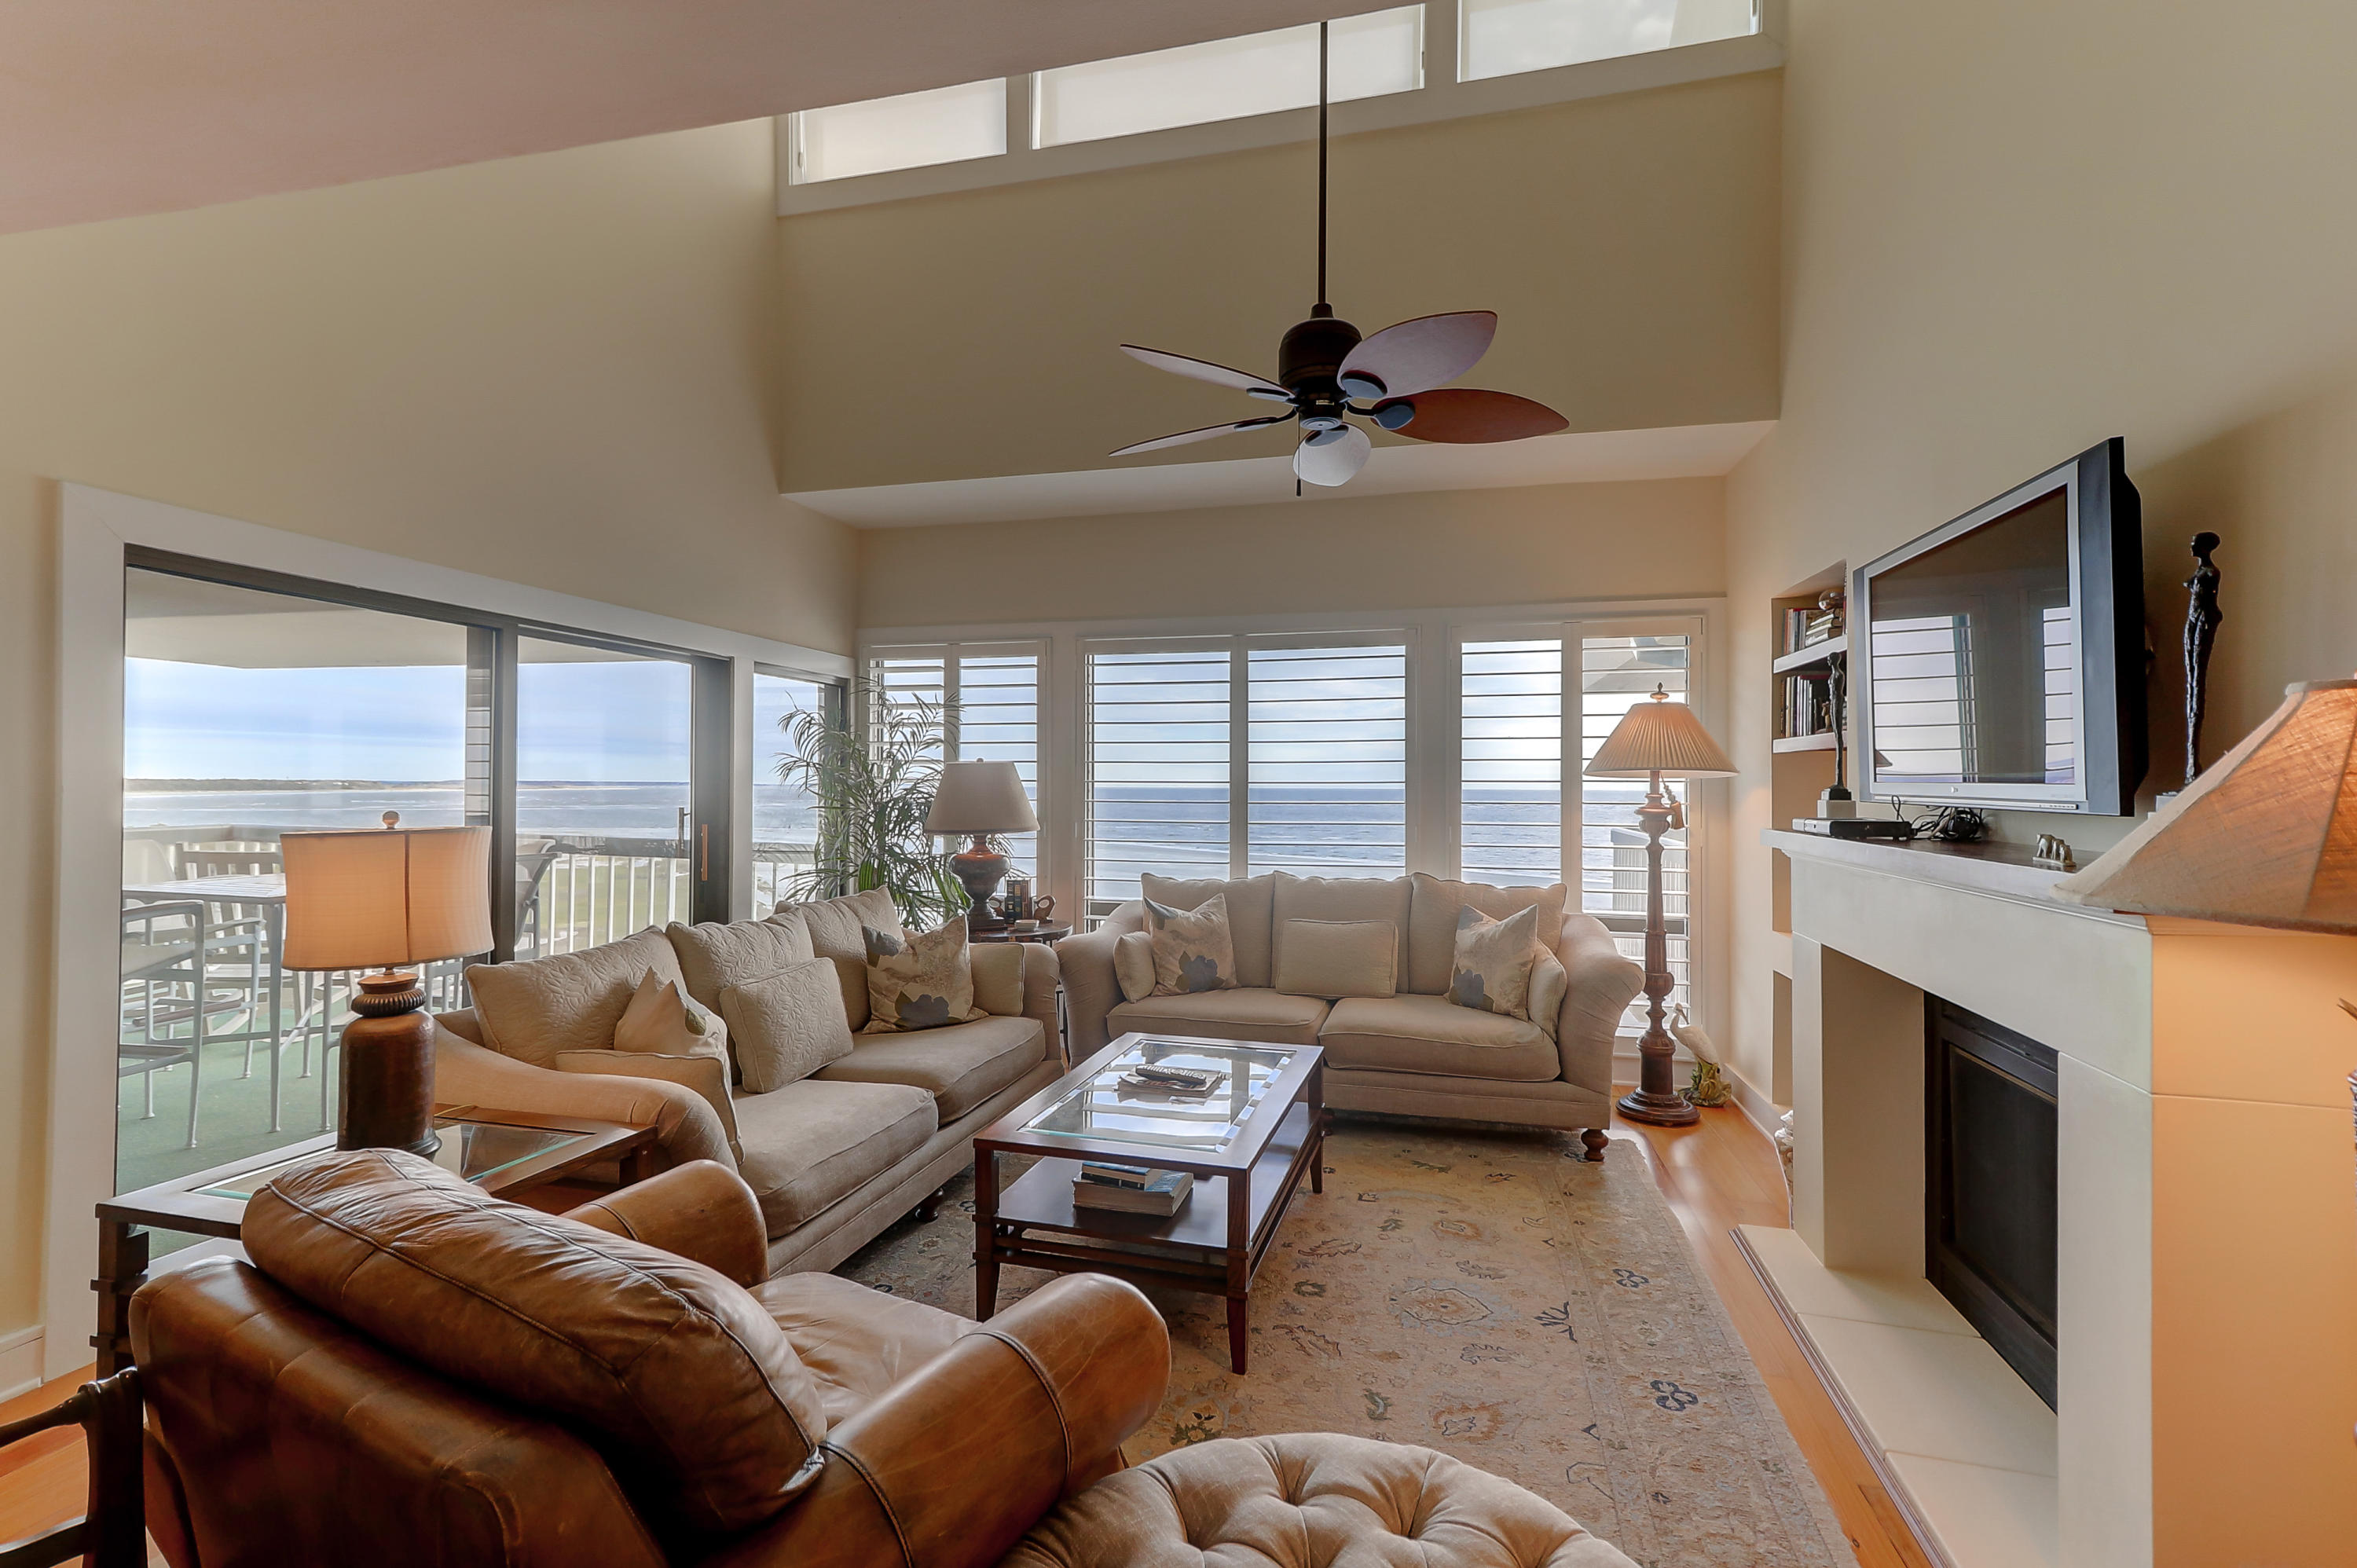 Wild Dunes Homes For Sale - 1506 Ocean Club, Isle of Palms, SC - 12